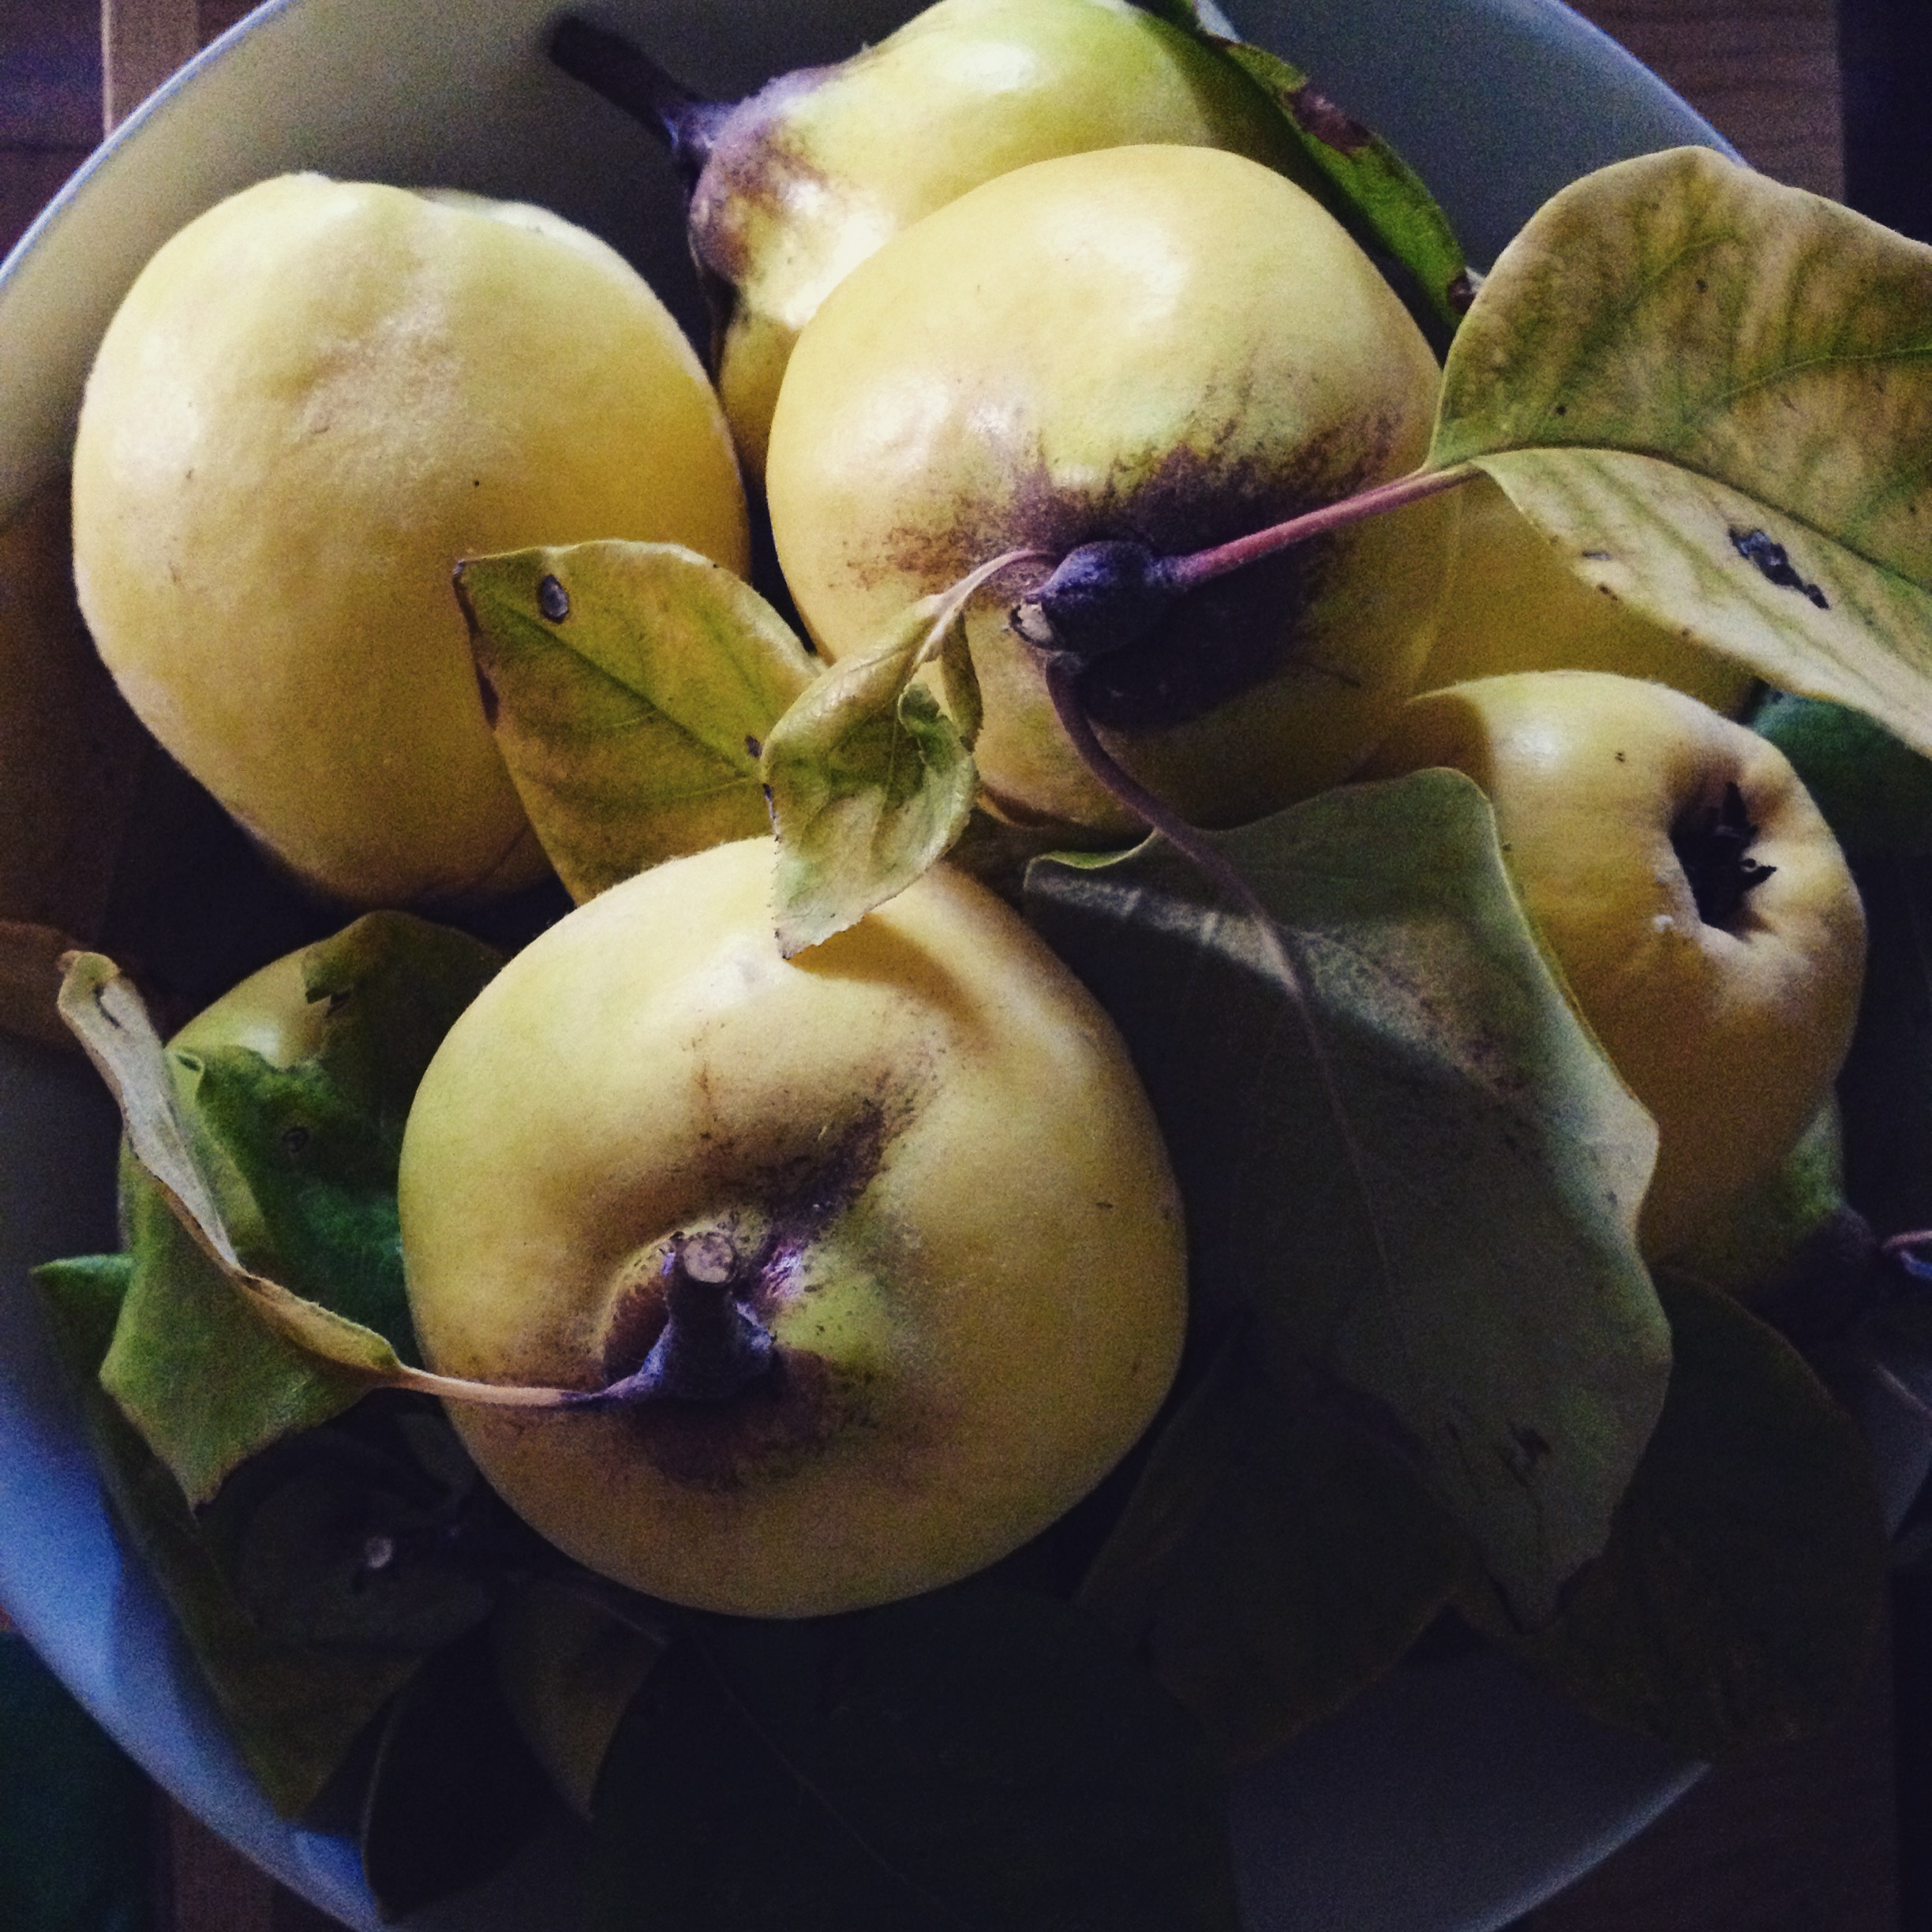 Quince is one of the oldest known fruits, and is a symbol of love.